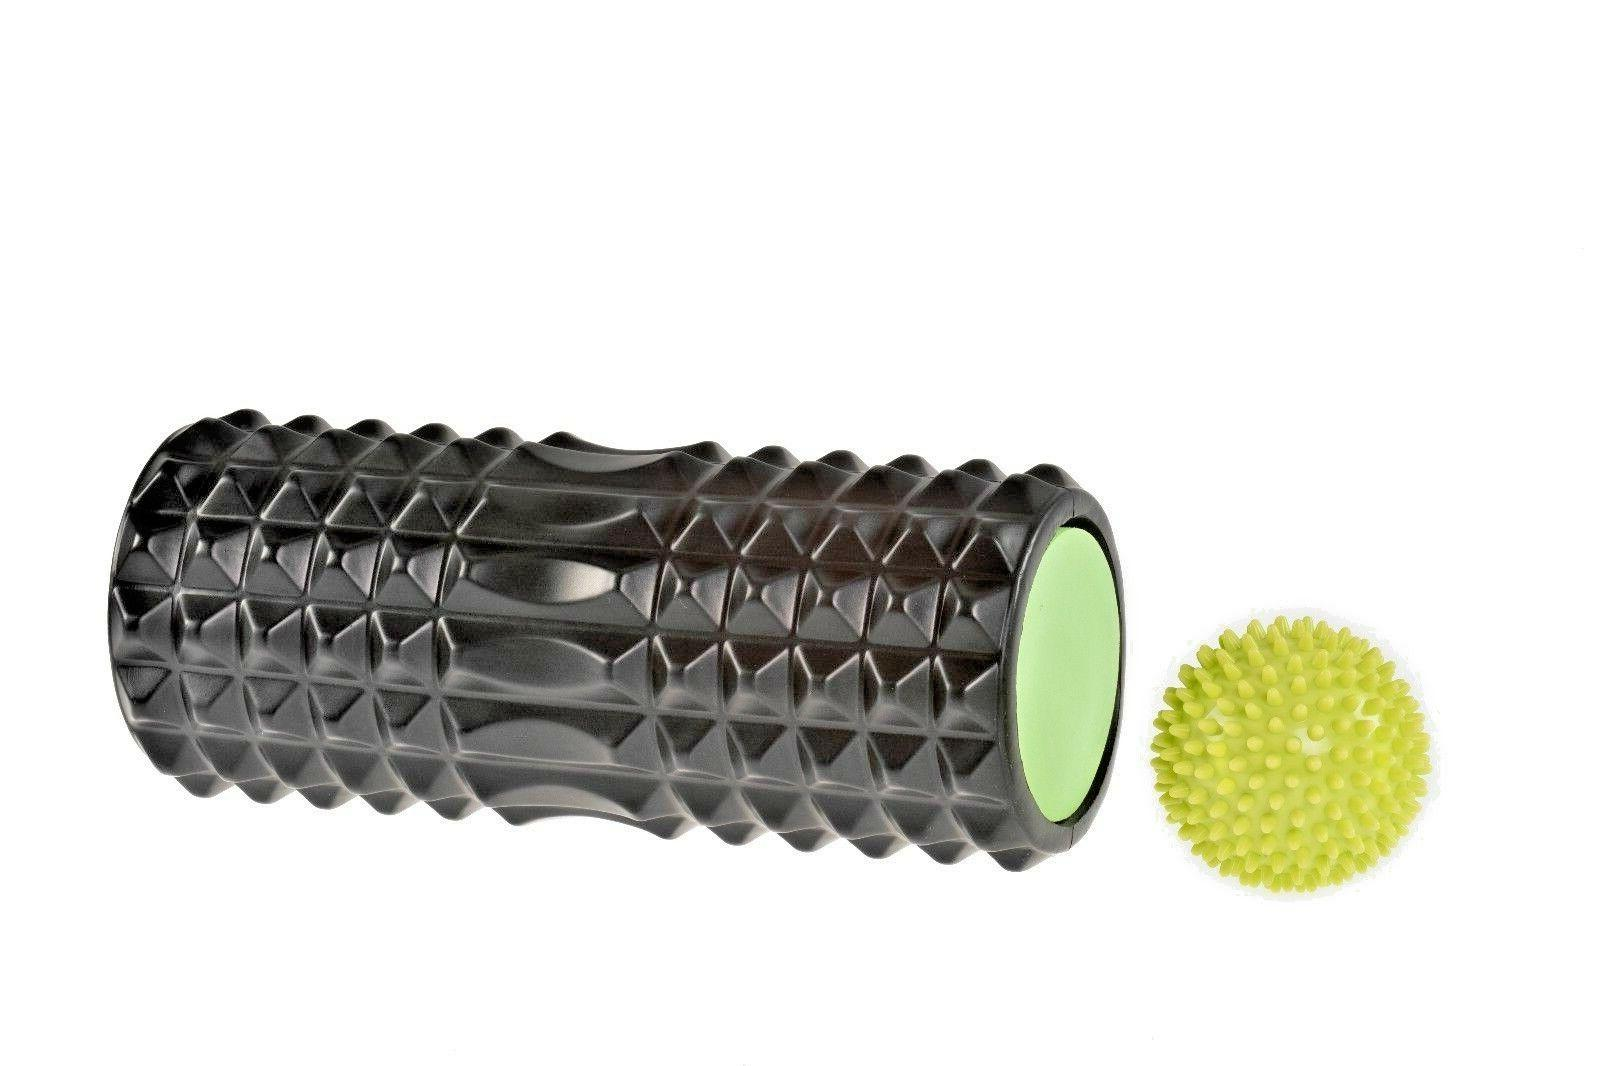 2 in1 Roller Set, for Workout Exercises, Shipping